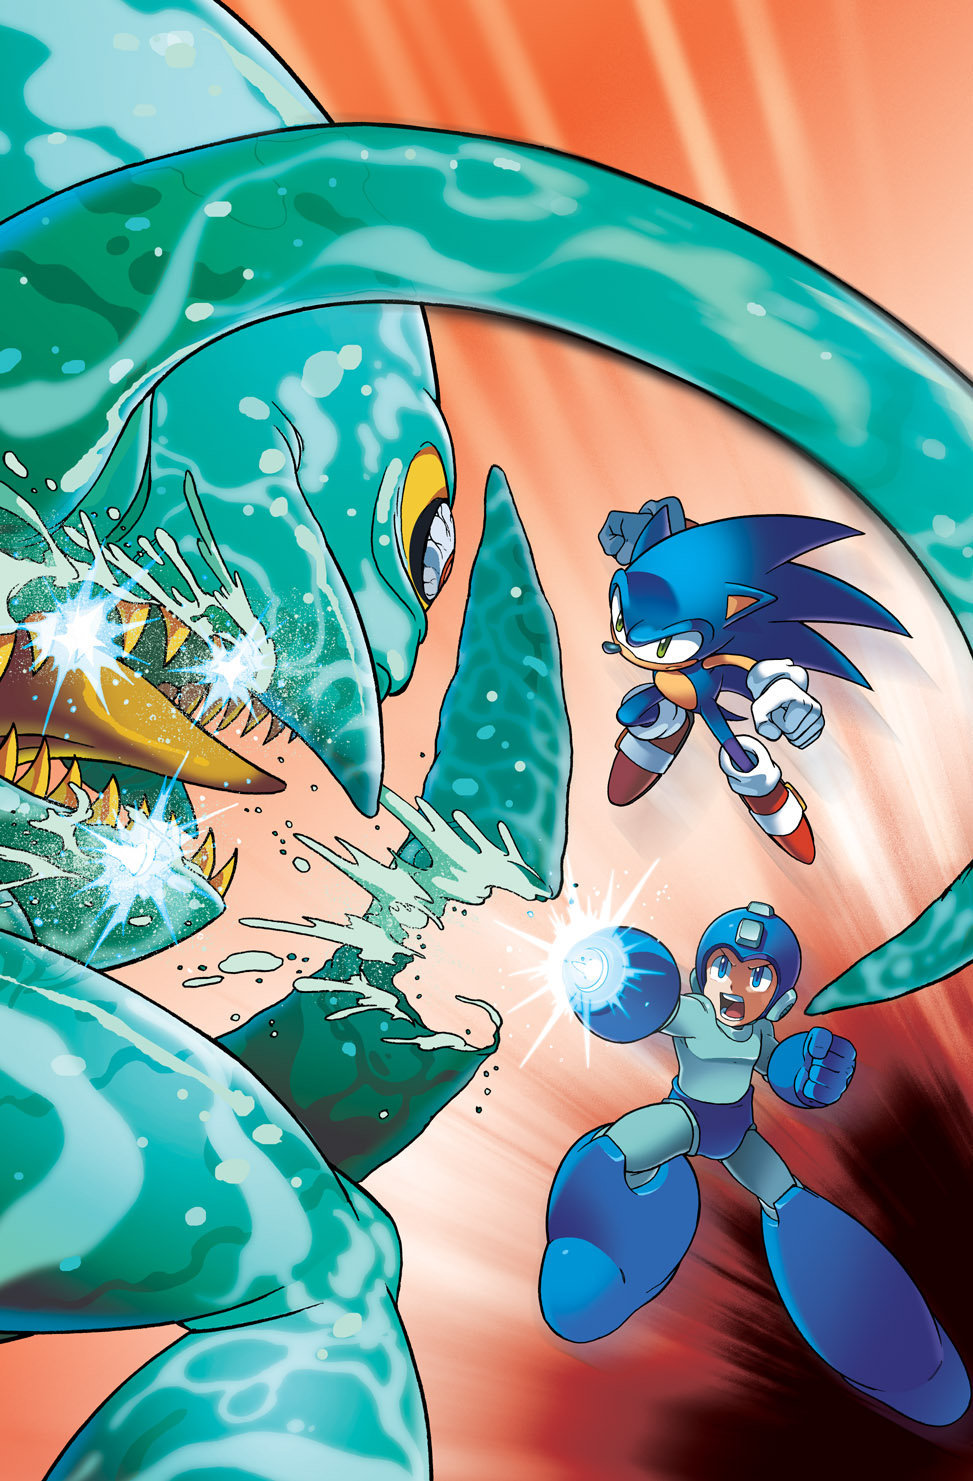 Sonic-Mega Man - Worlds Collide  19-04-13 004